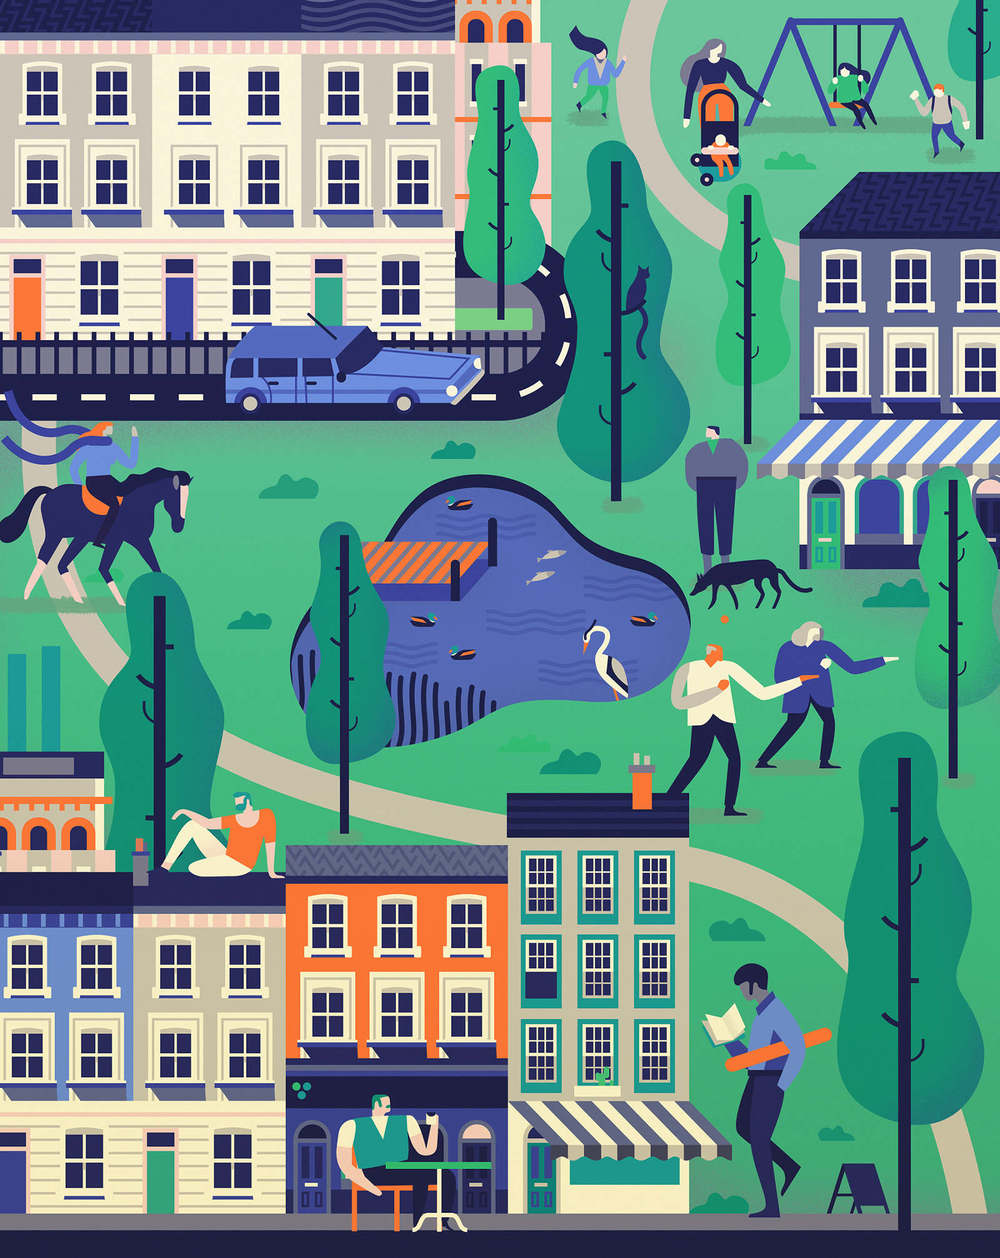 London-Magazine-Ideal-Neighbourhood-Editorial-Illustration-Owen-Davey_1600_c.jpg